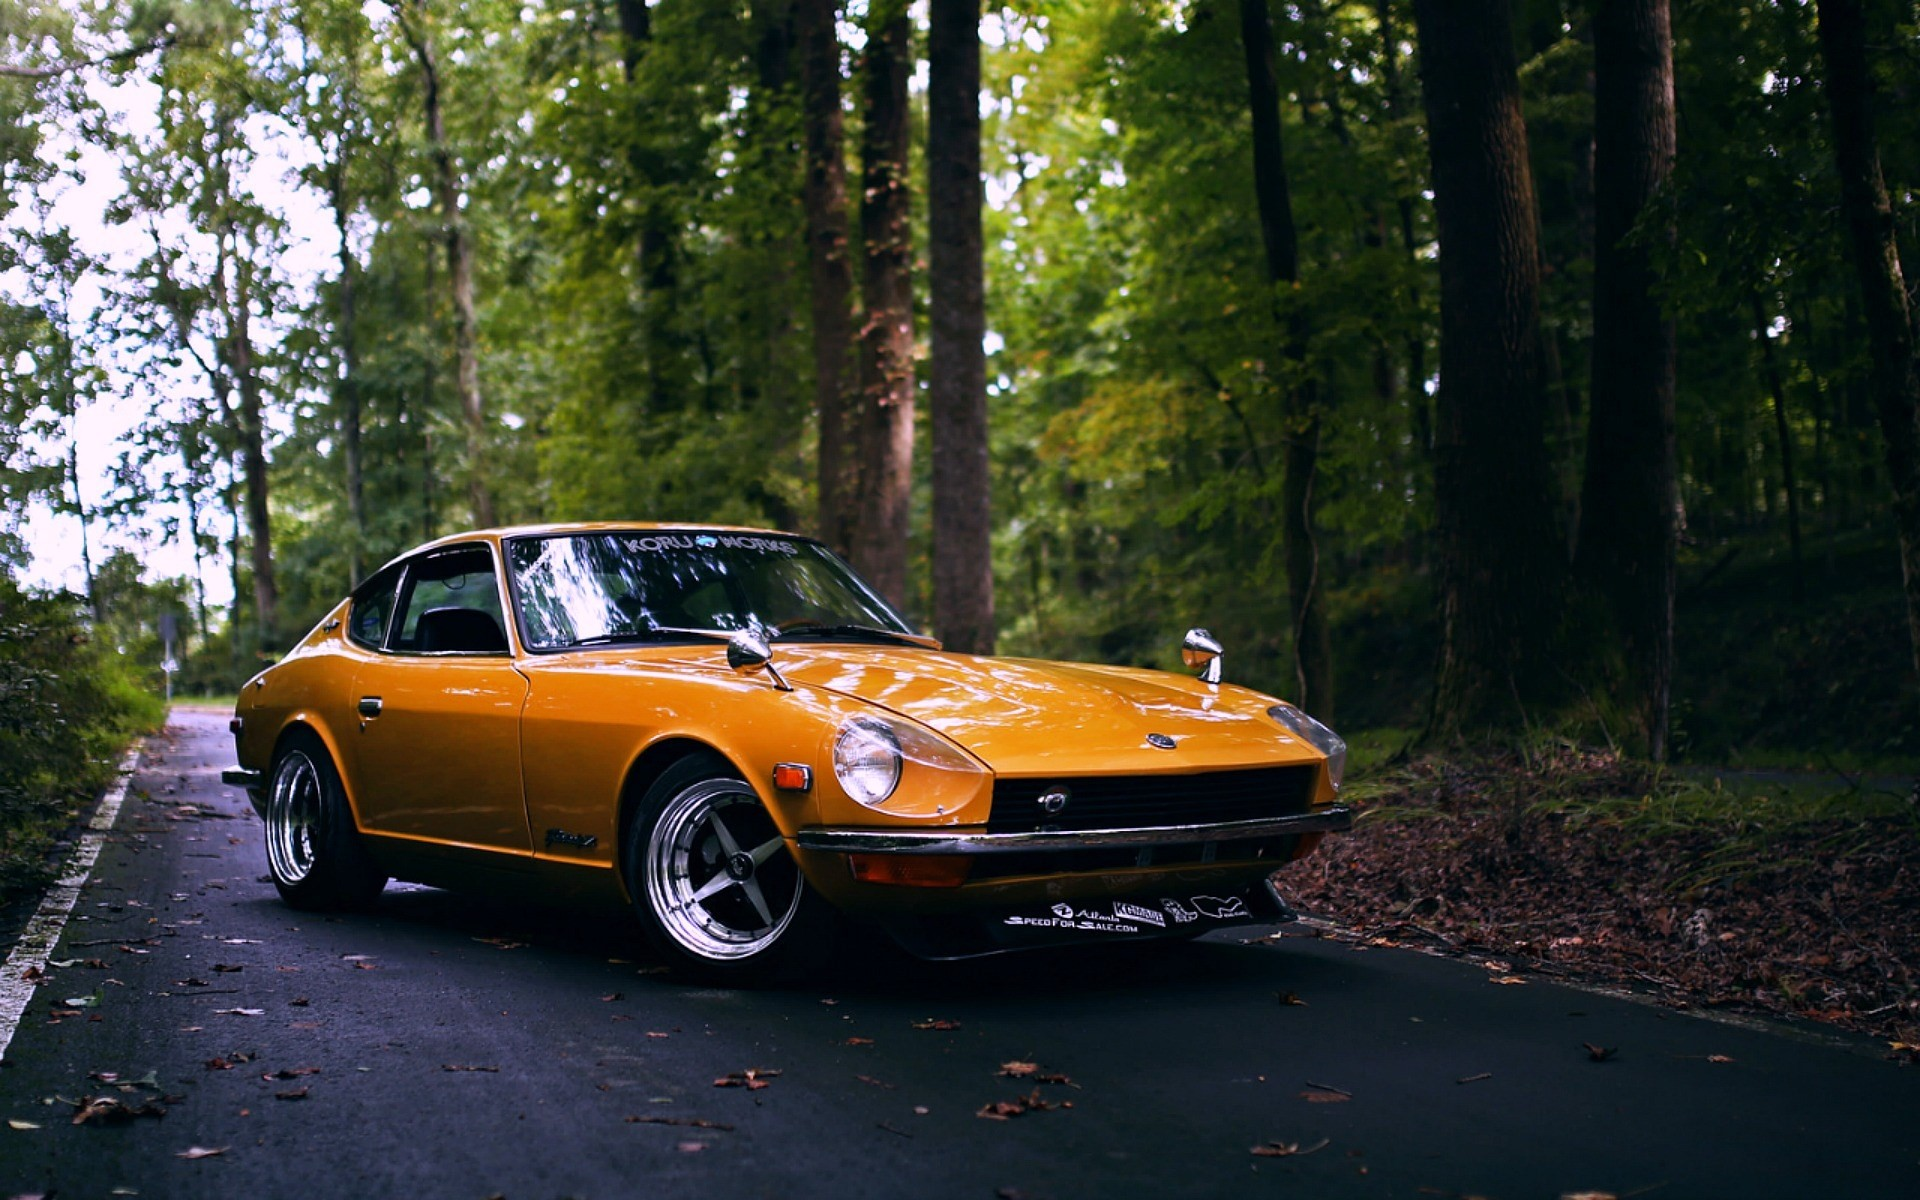 Datsun 240Z Wallpaper (61+ images)1972 Datsun 240z Wallpaper